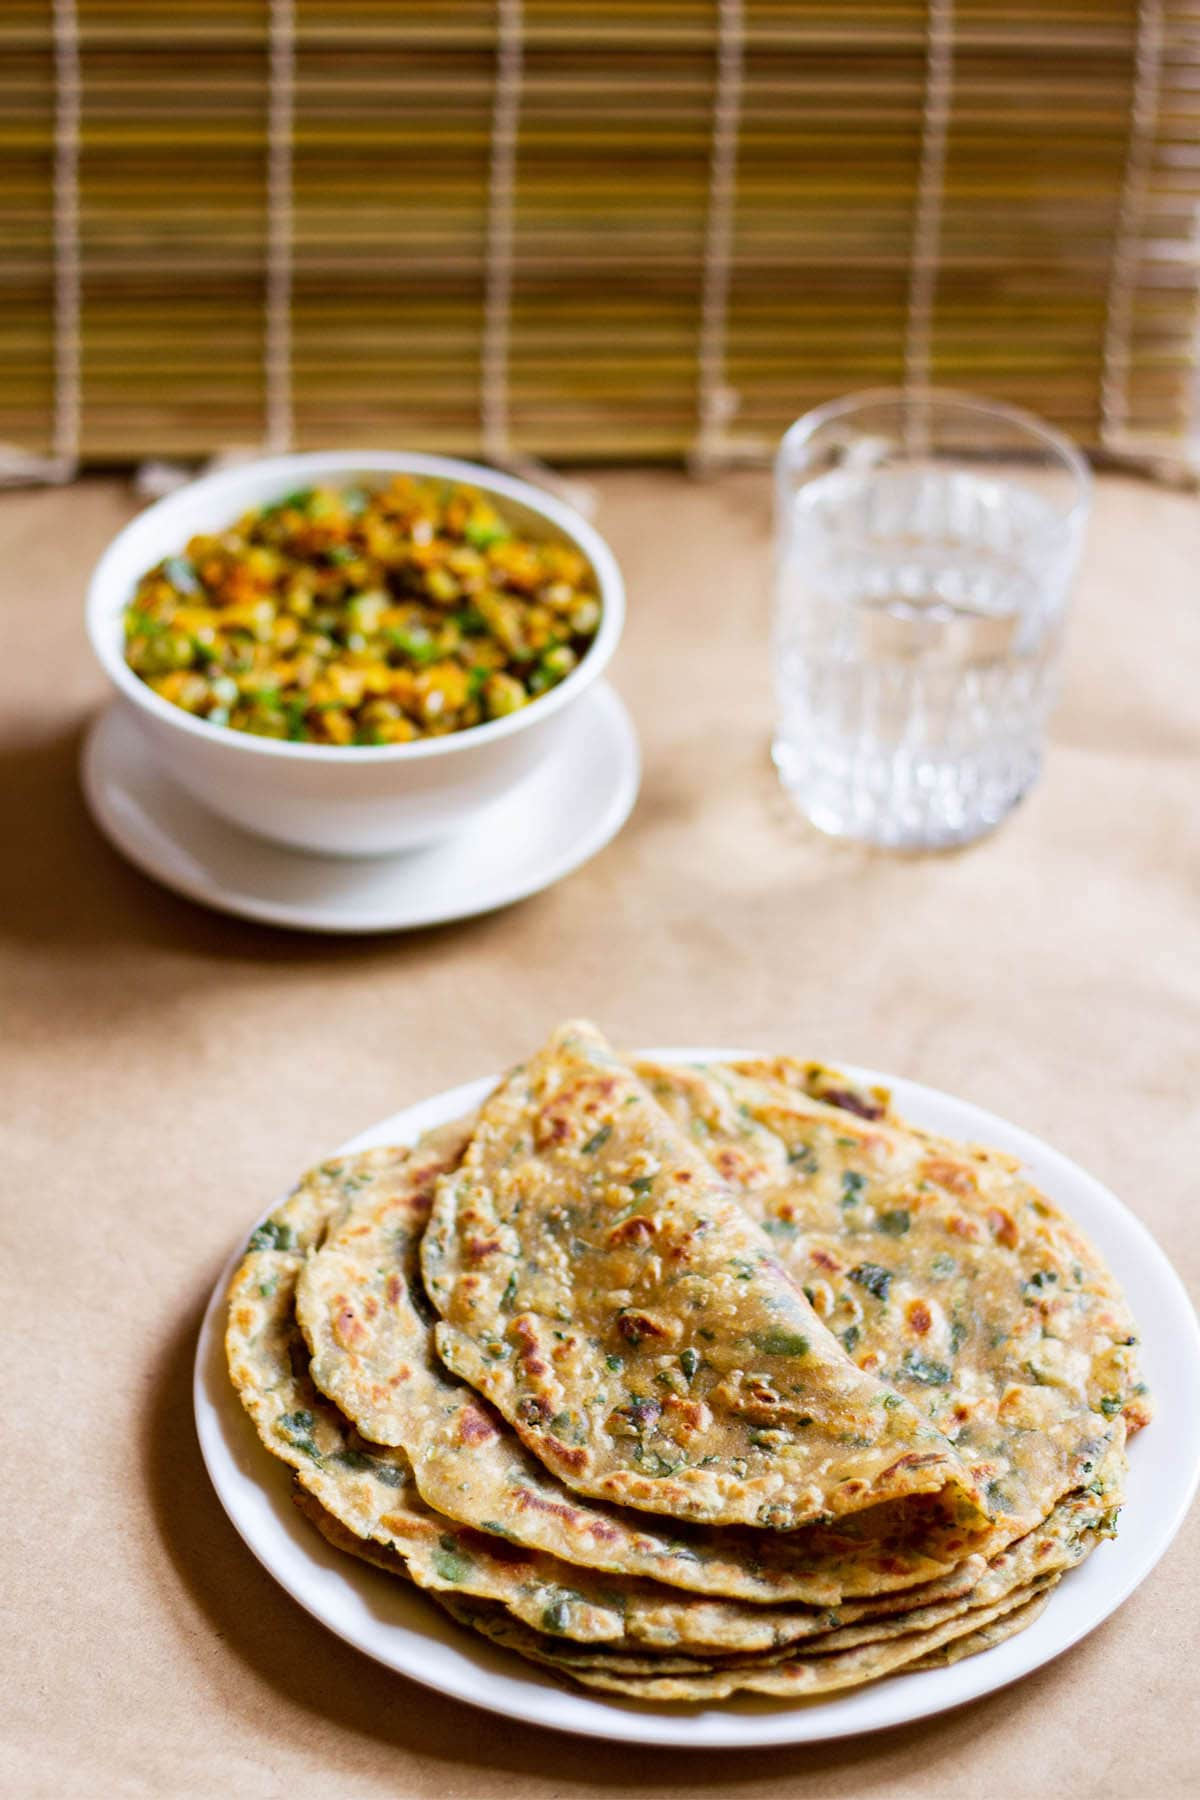 folded methi paratha on a stack of methi parathas in a white plate with a veggie dish in white bowl and glass of water